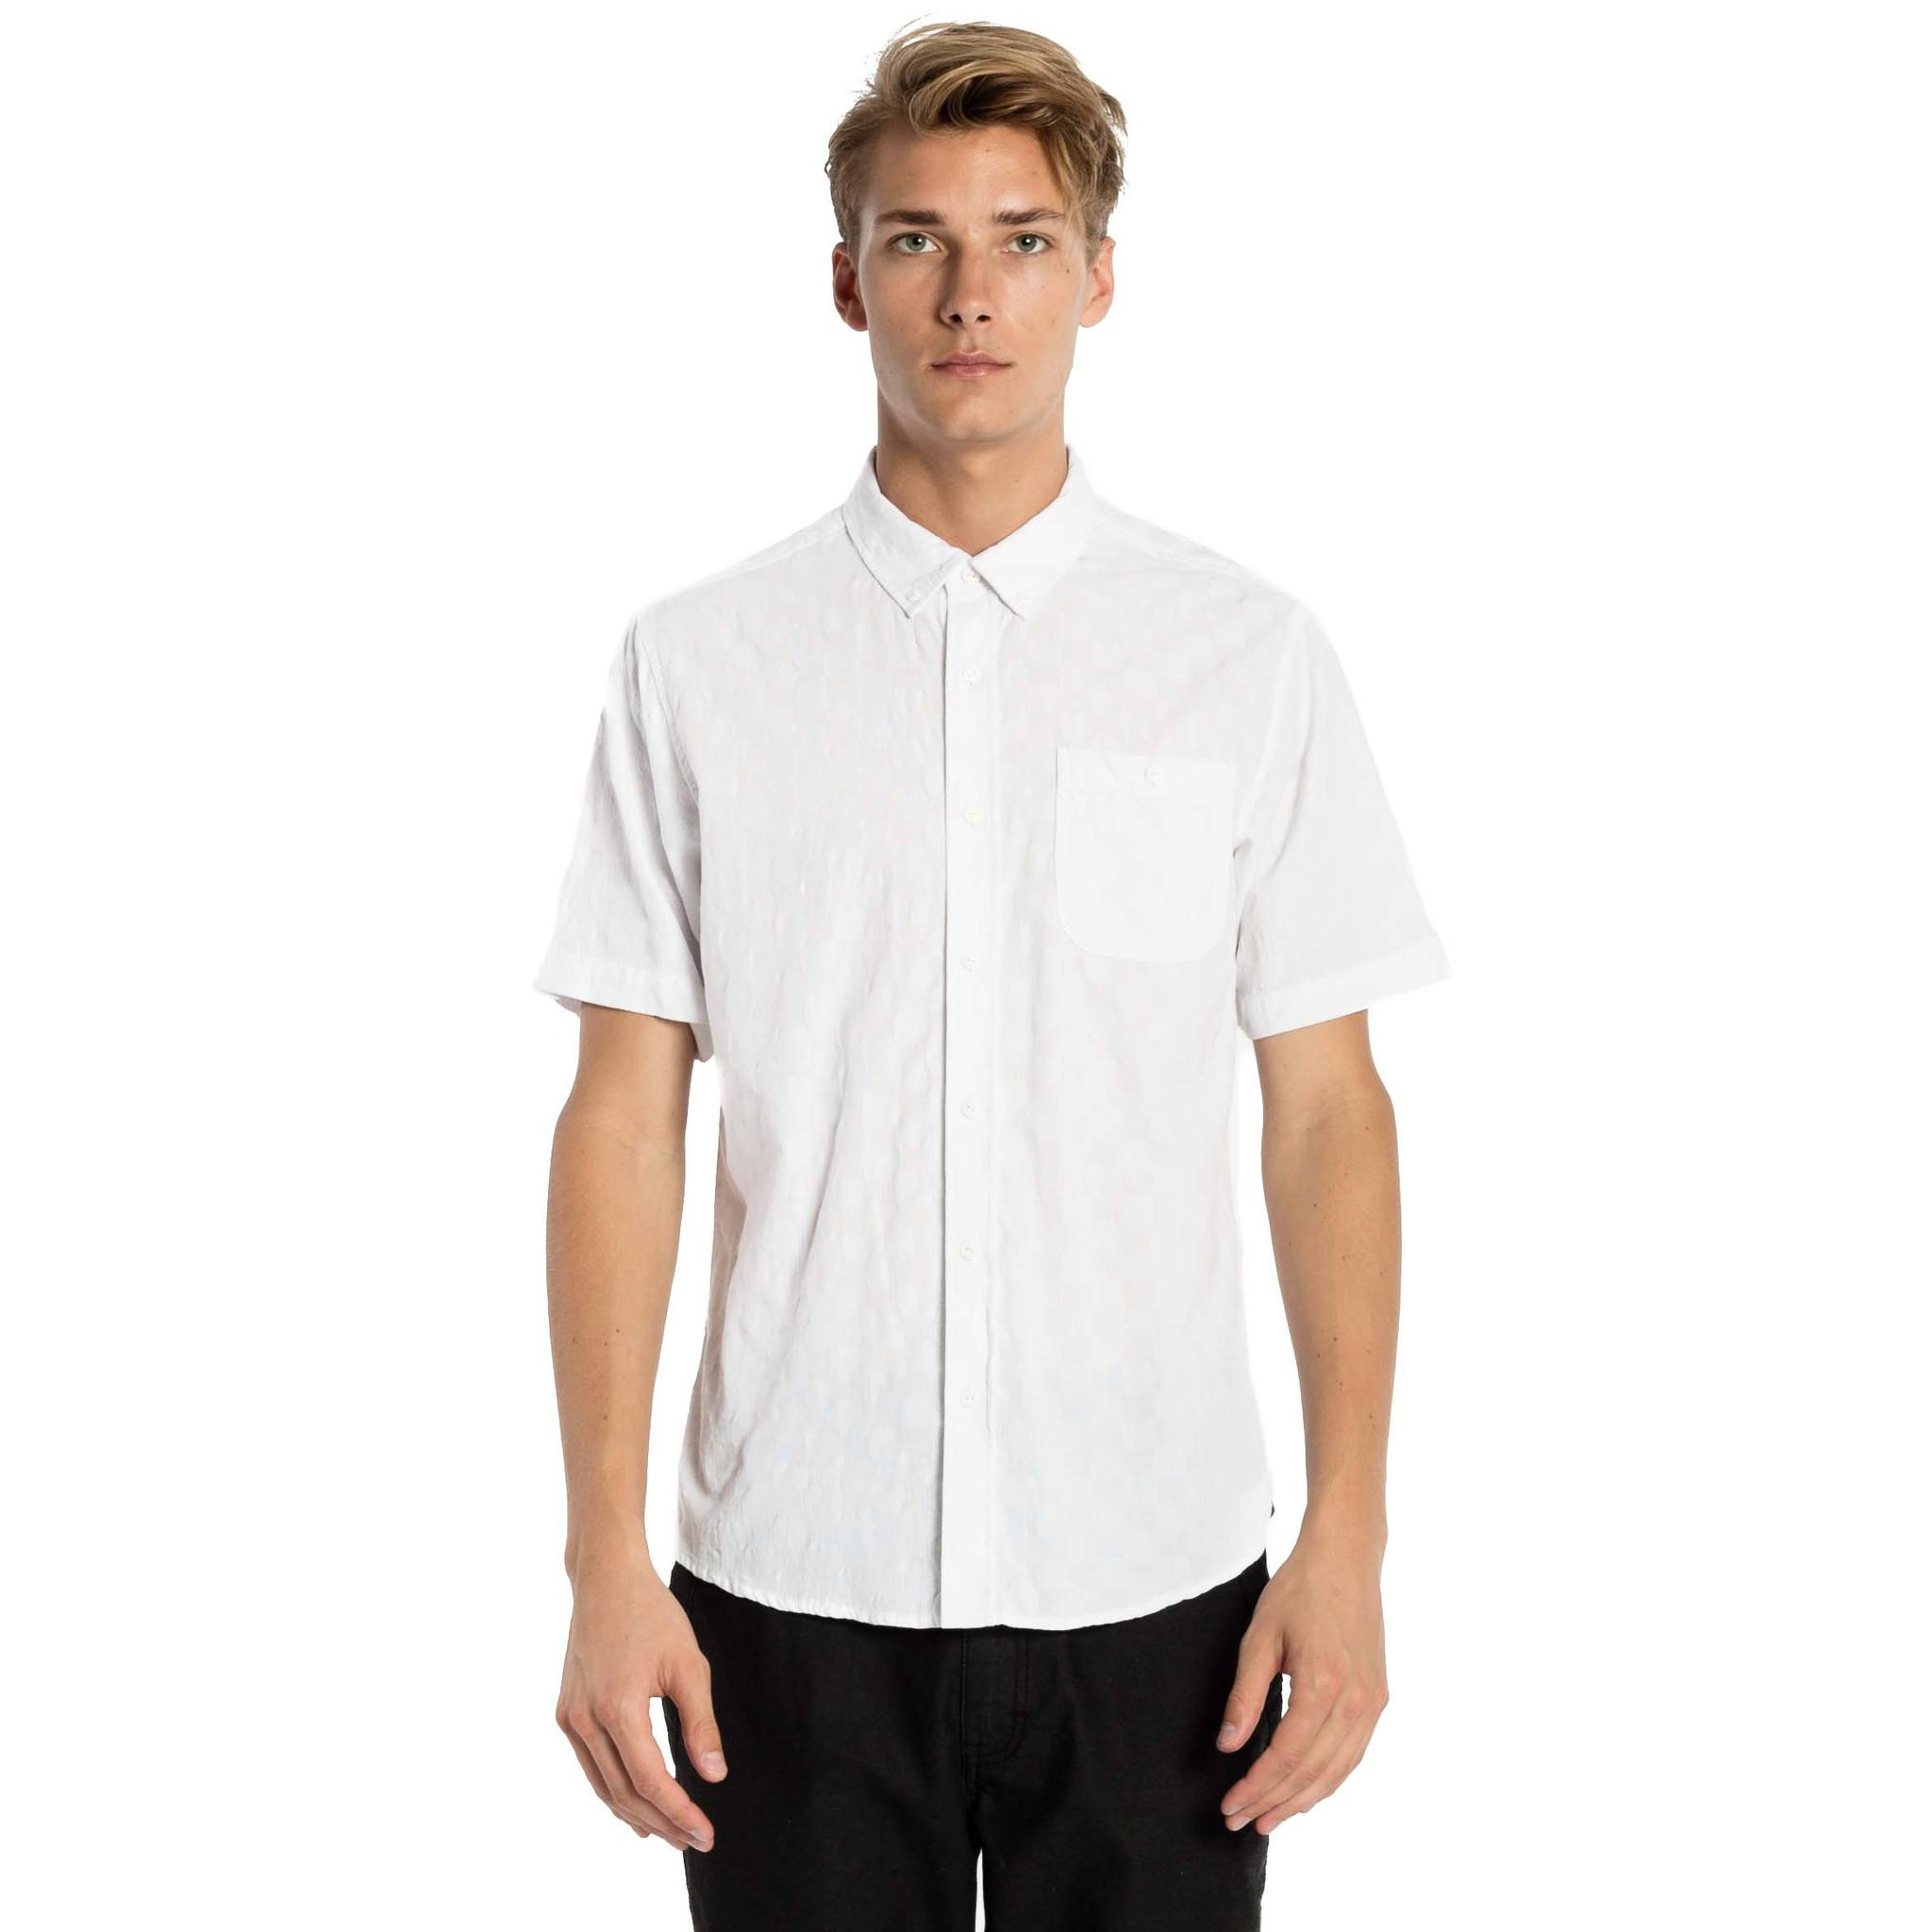 Highland Shirt - White - Ezekiel Clothing